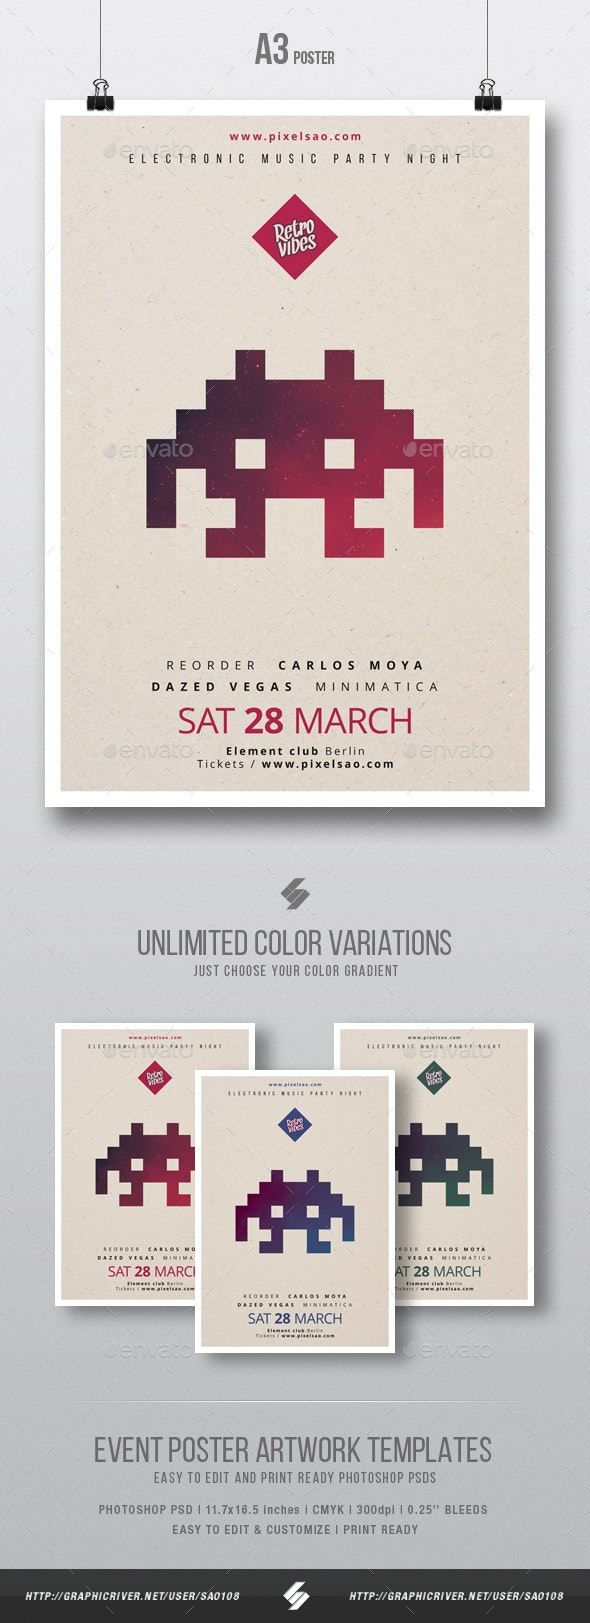 Retro Vibes - Minimal Party Poster / Flyer Template A3 - Clubs & Parties Events